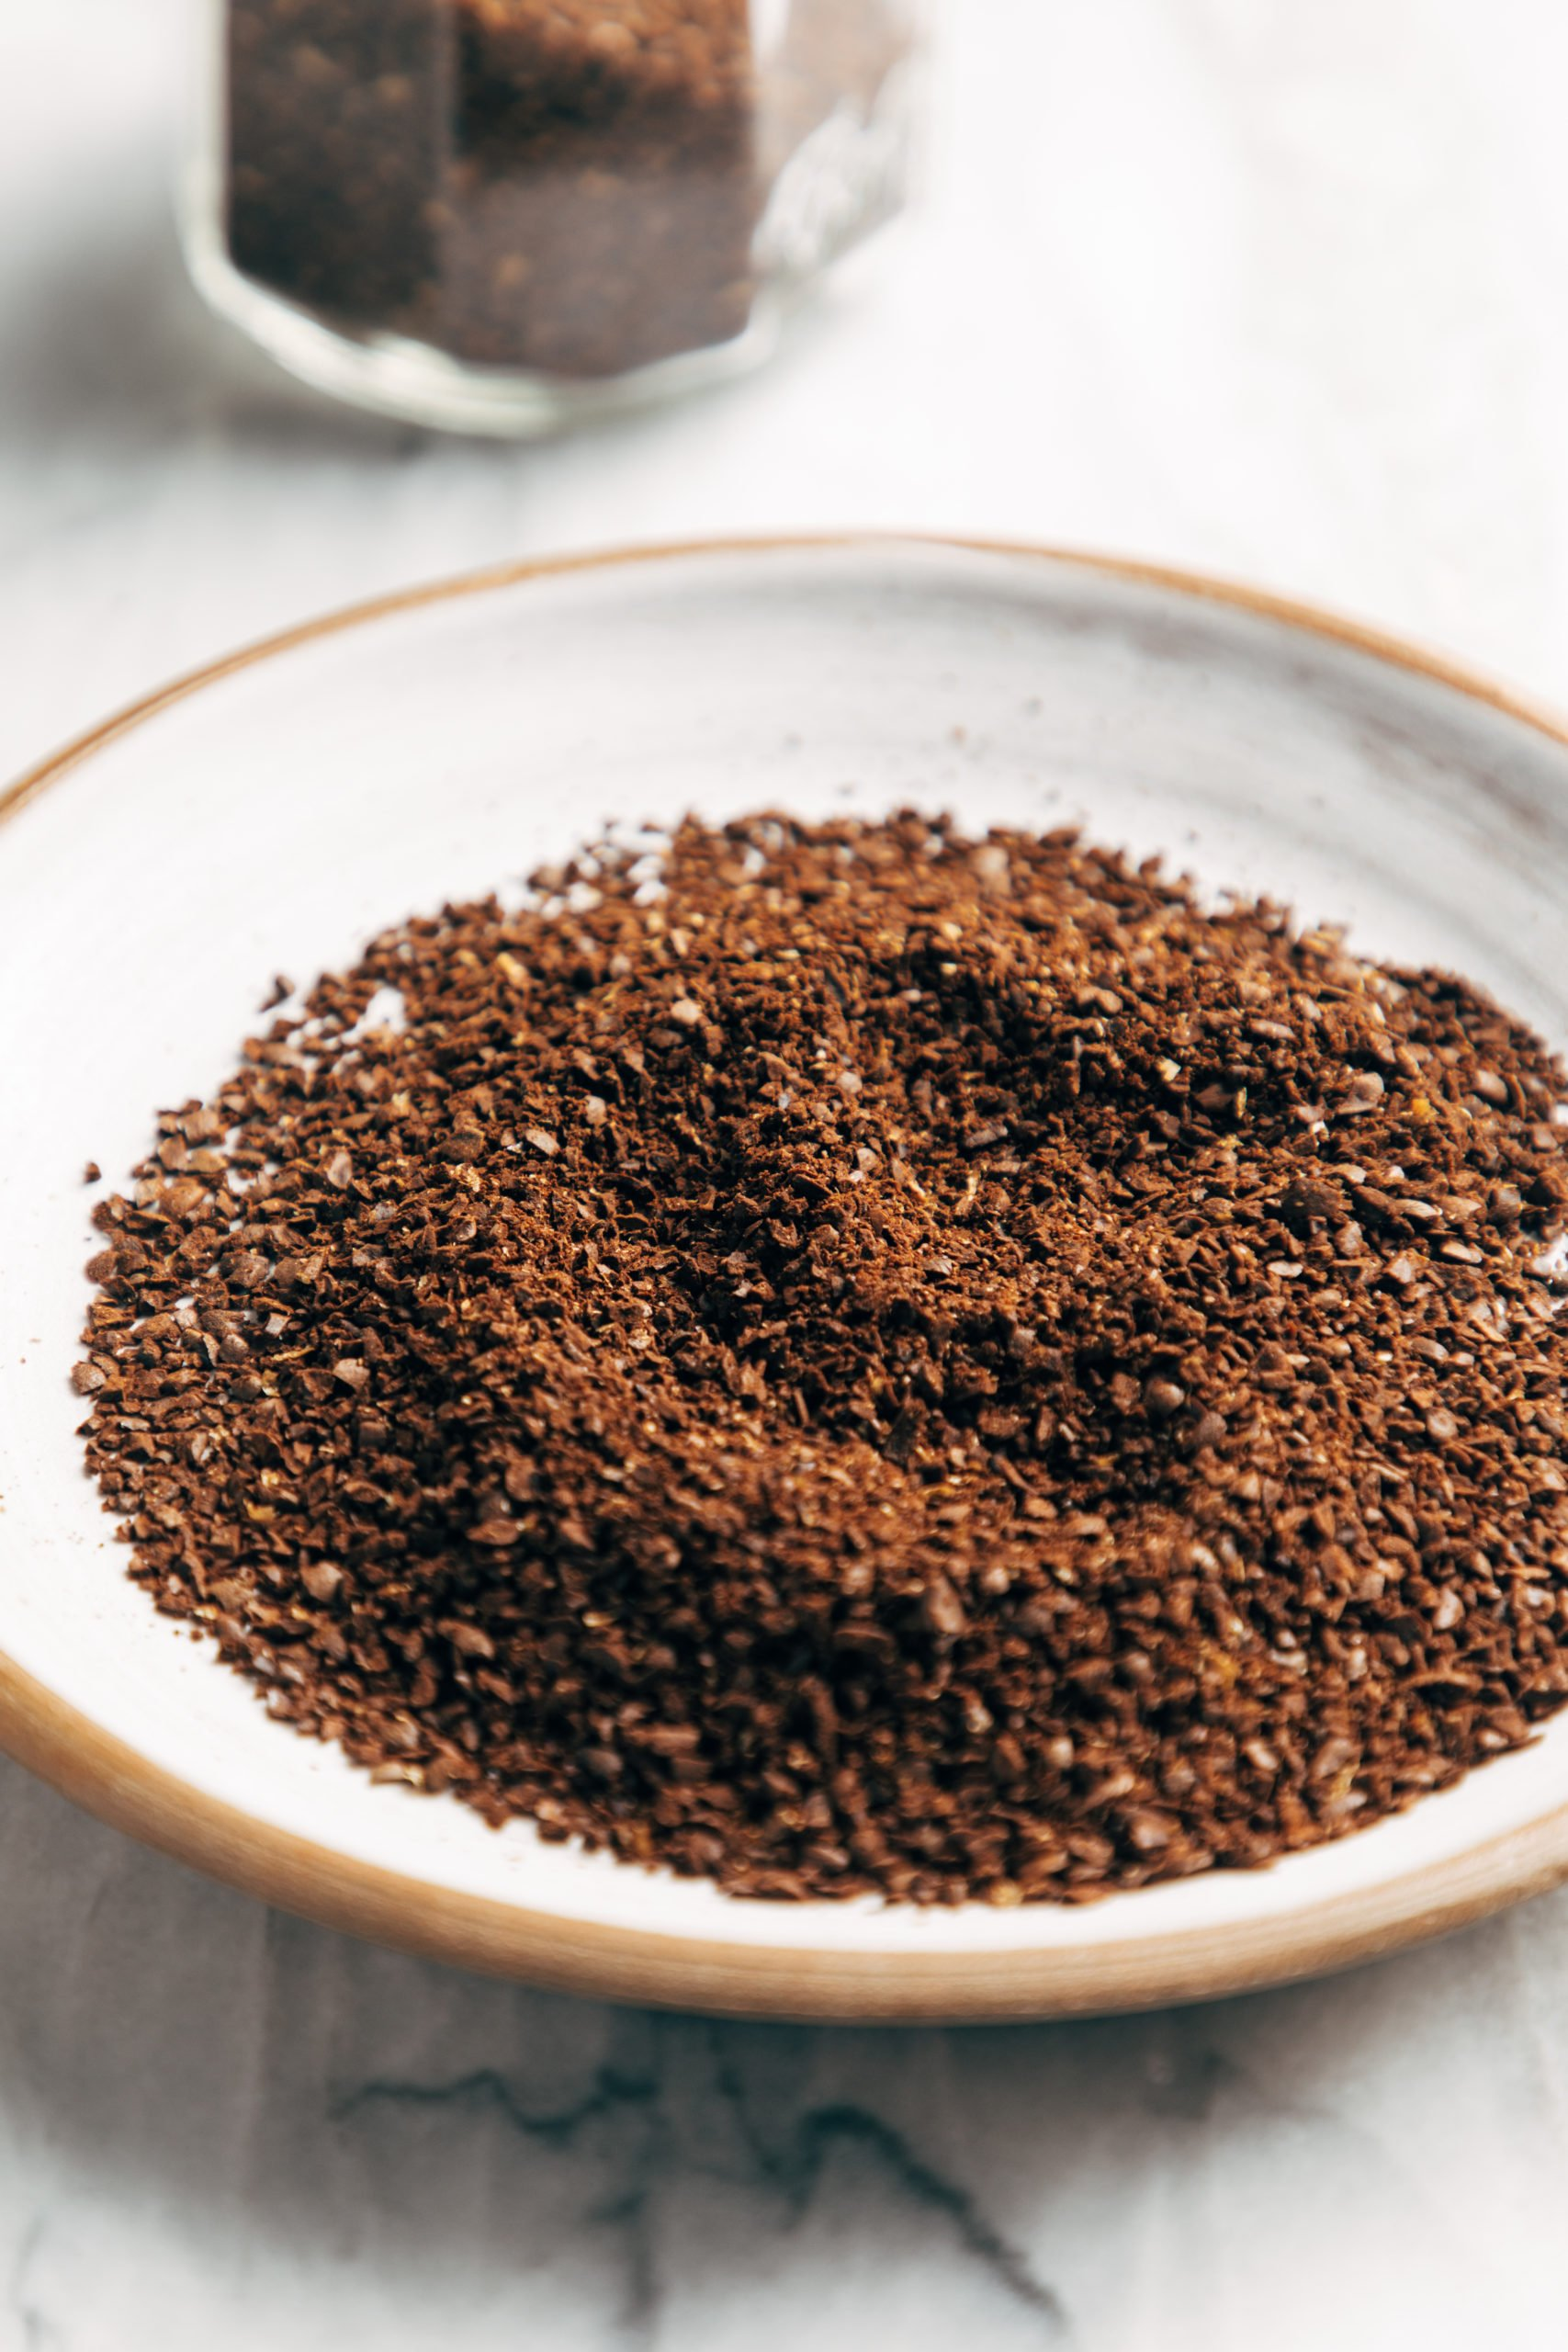 Coarse grind coffee beans for cold brew coffee